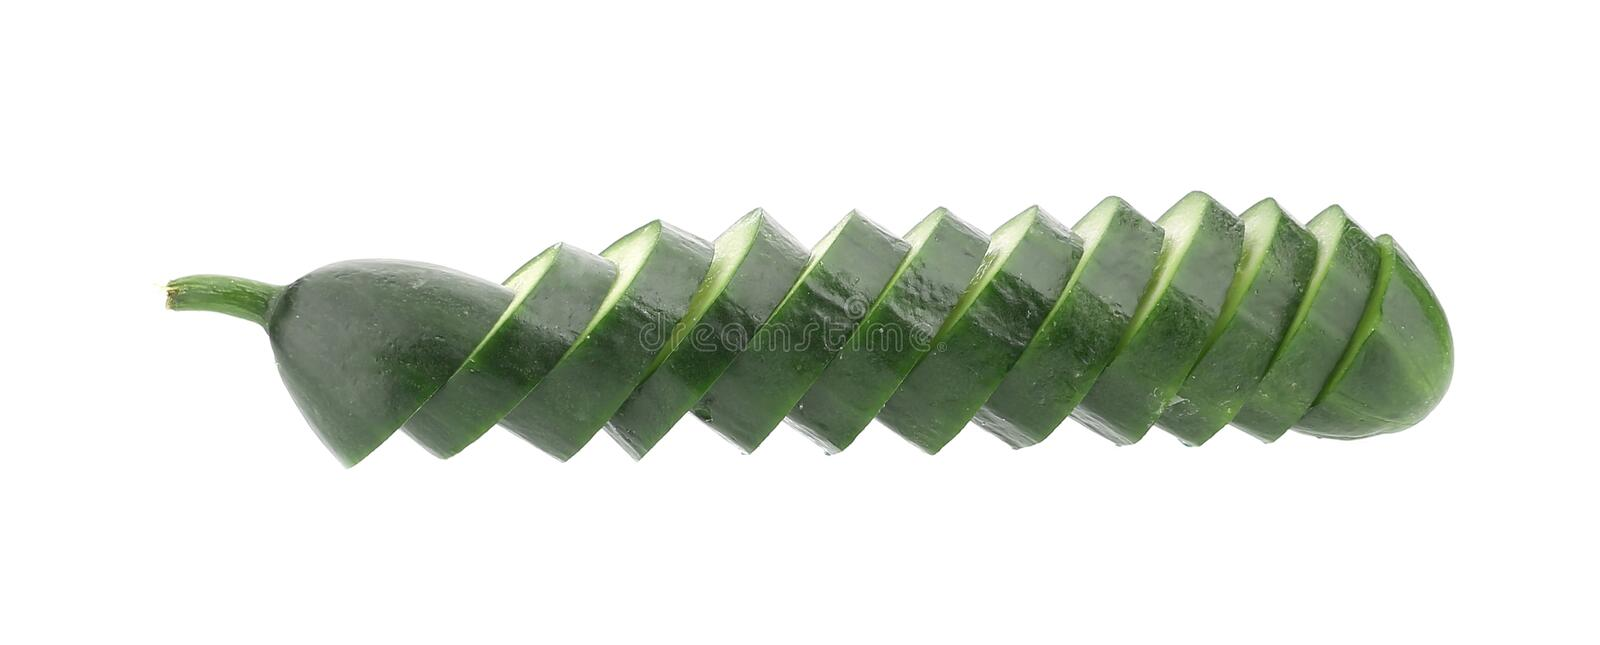 Slices of cucmber. royalty free stock images